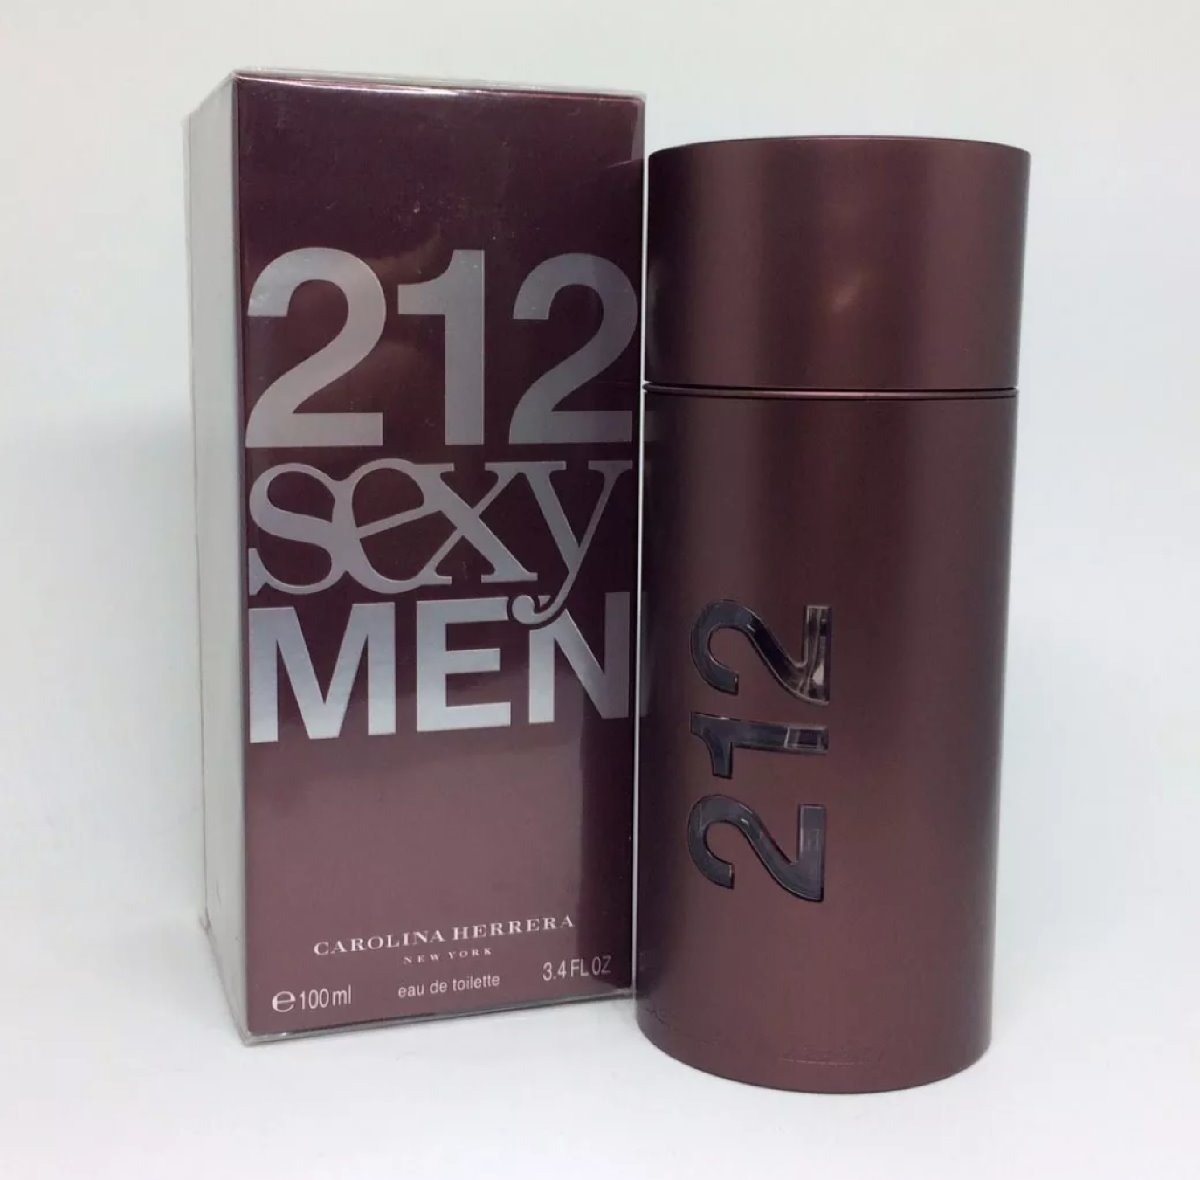 4ecbdf4db 212 sexy men carolina herrera edt 100ml masculino. Carregando zoom.